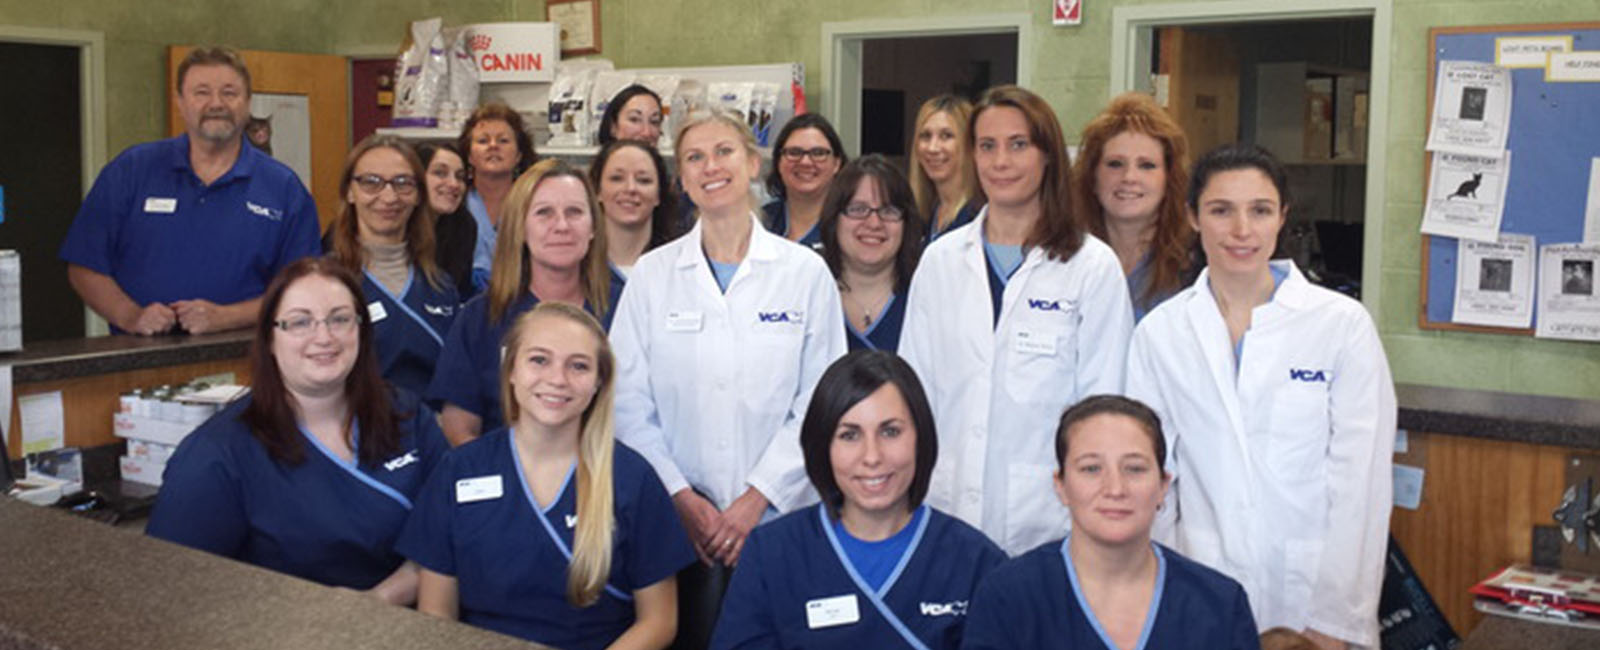 Homepage Team Picture of VCA Plainfield Animal Hospital